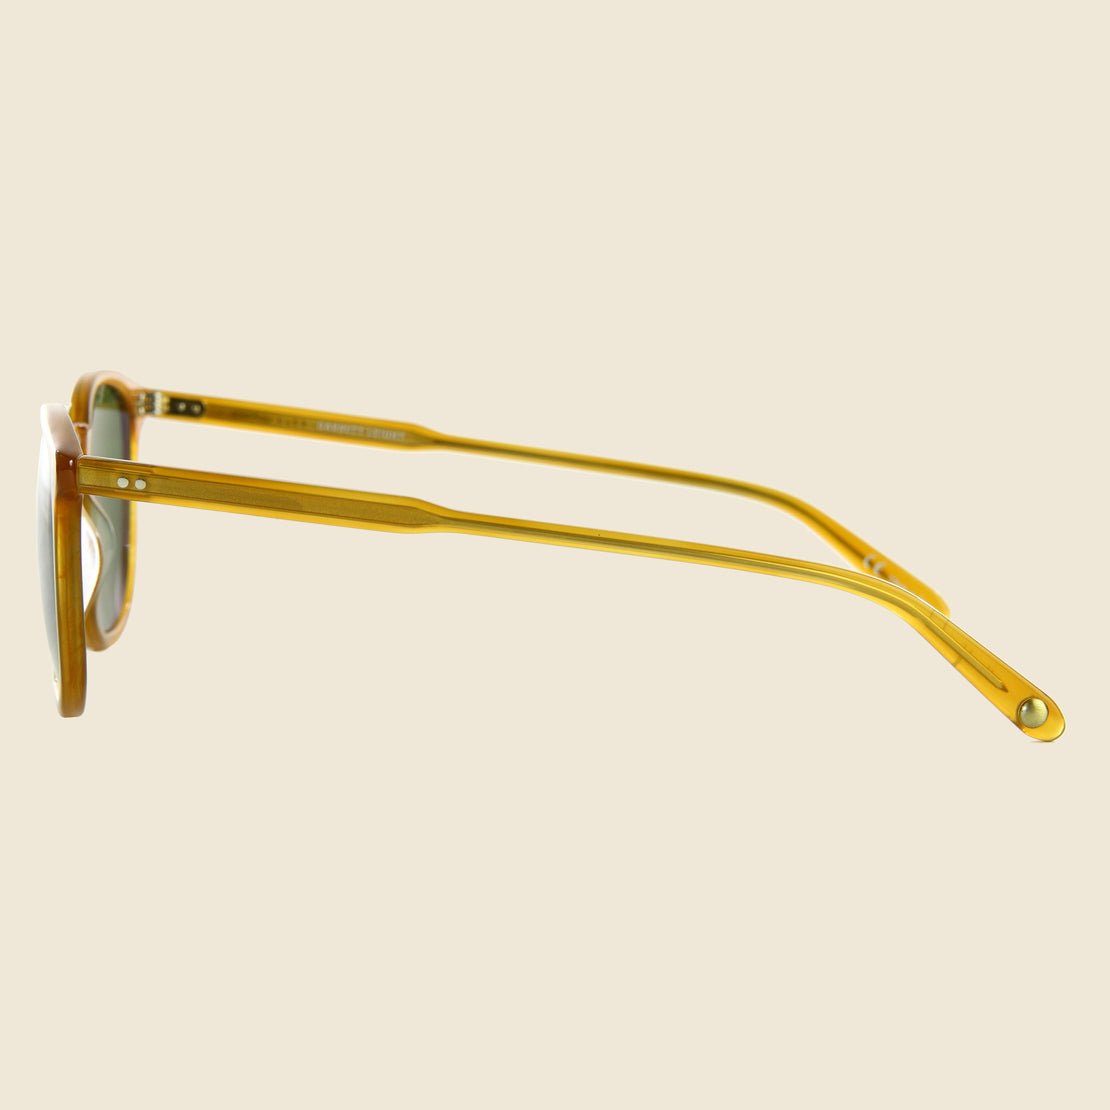 Kinney - Butterscotch - Garrett Leight - STAG Provisions - Accessories - Eyewear